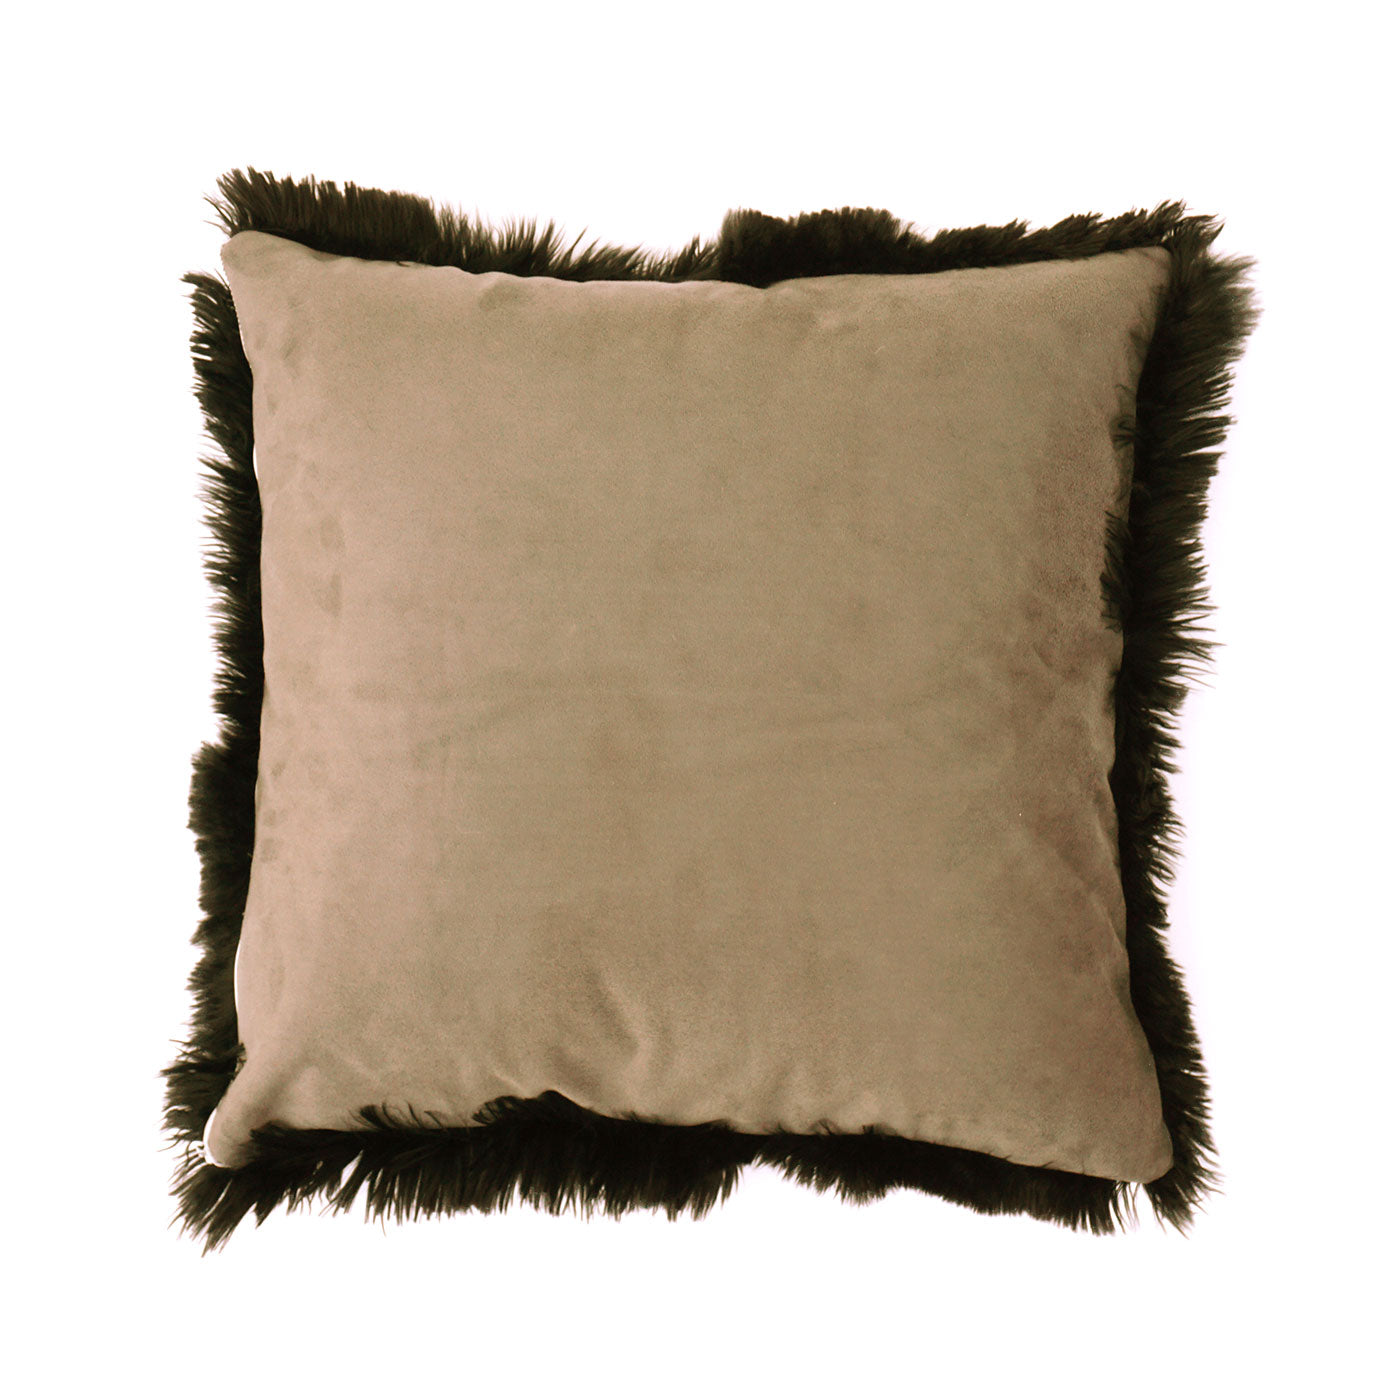 BLACK LUXURY ALPACA FUR CUSHION